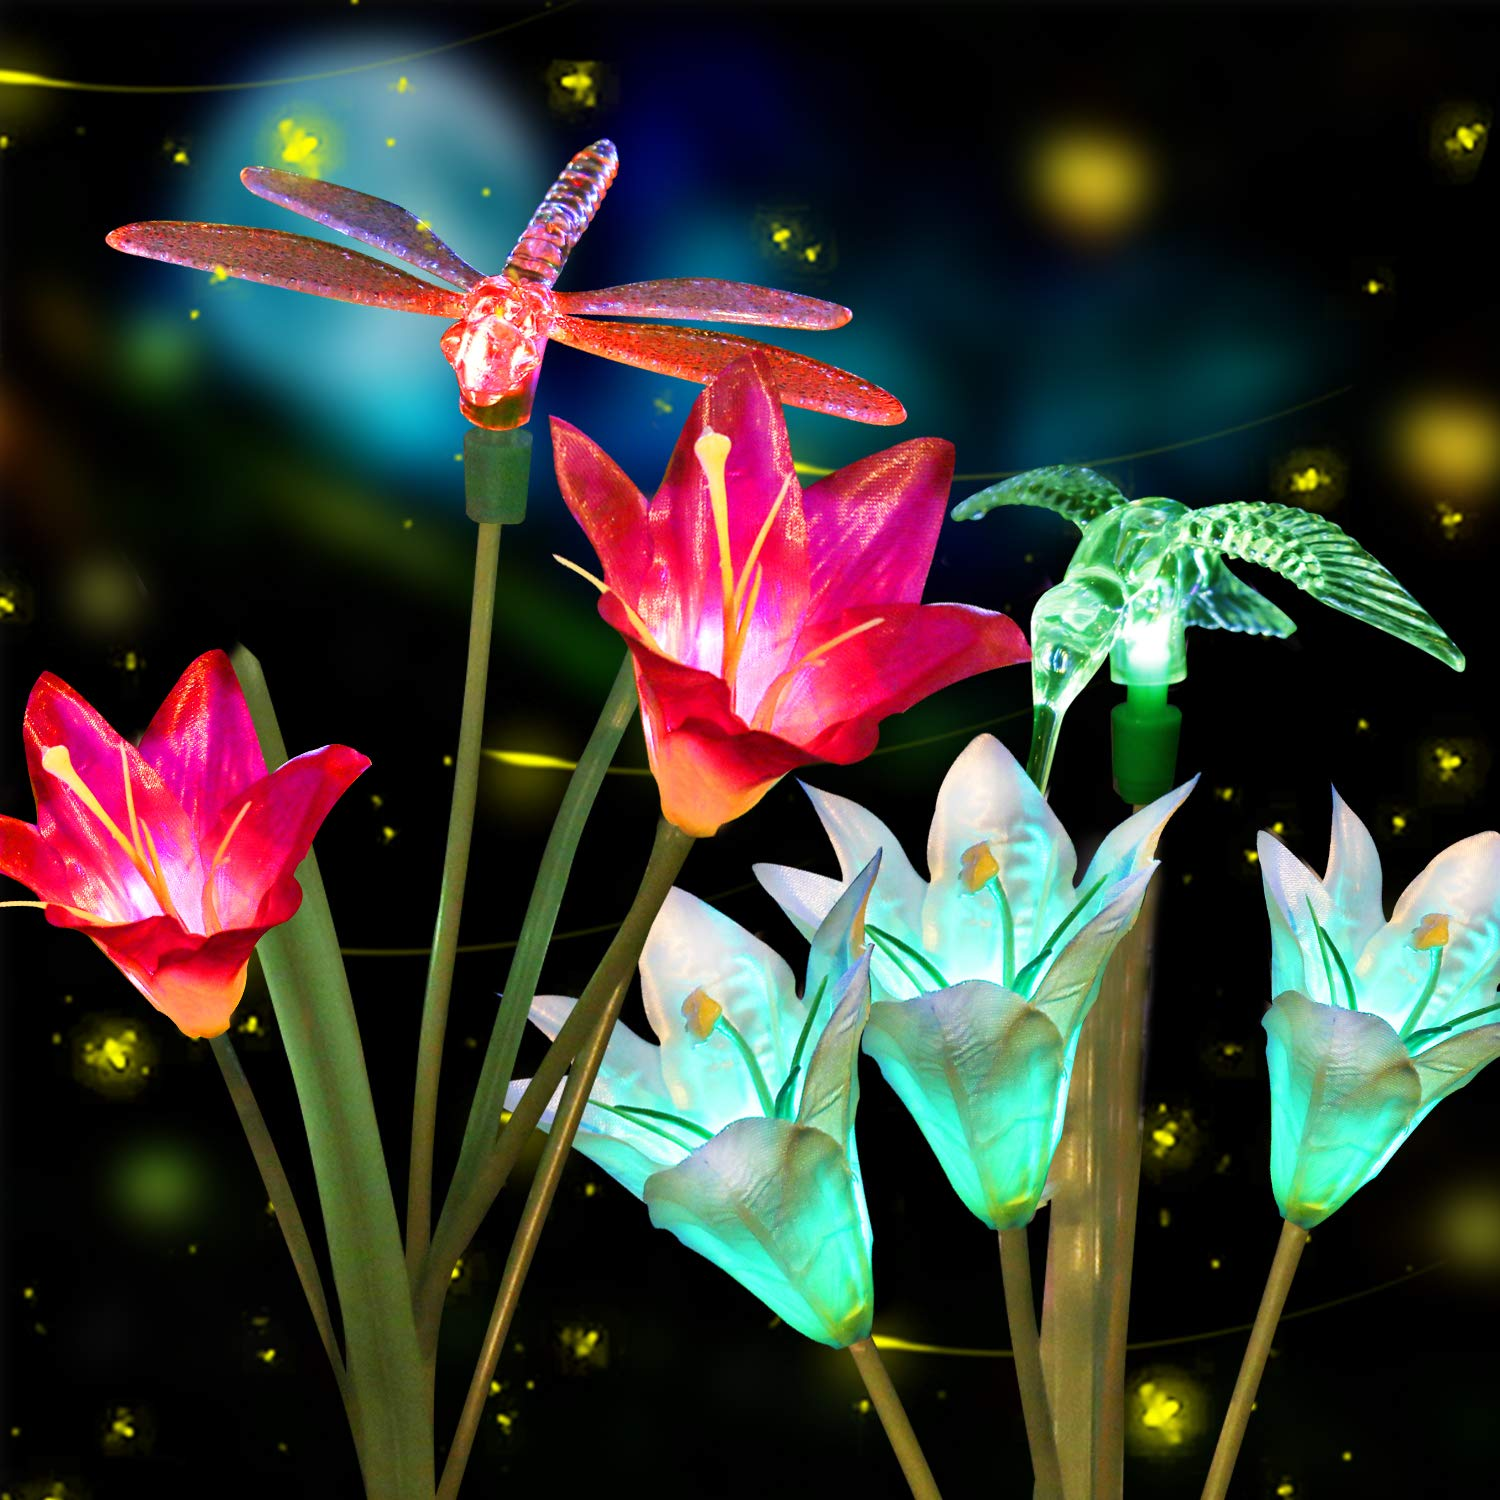 Anpro Outdoor Solar LED Flower Garden Light, Garden Decor with 6 Lily Flower and Butterflies Combination Decorative Lights Multi-Color Changing LED Solar Stake Lights for Garden, Patio, Backyard